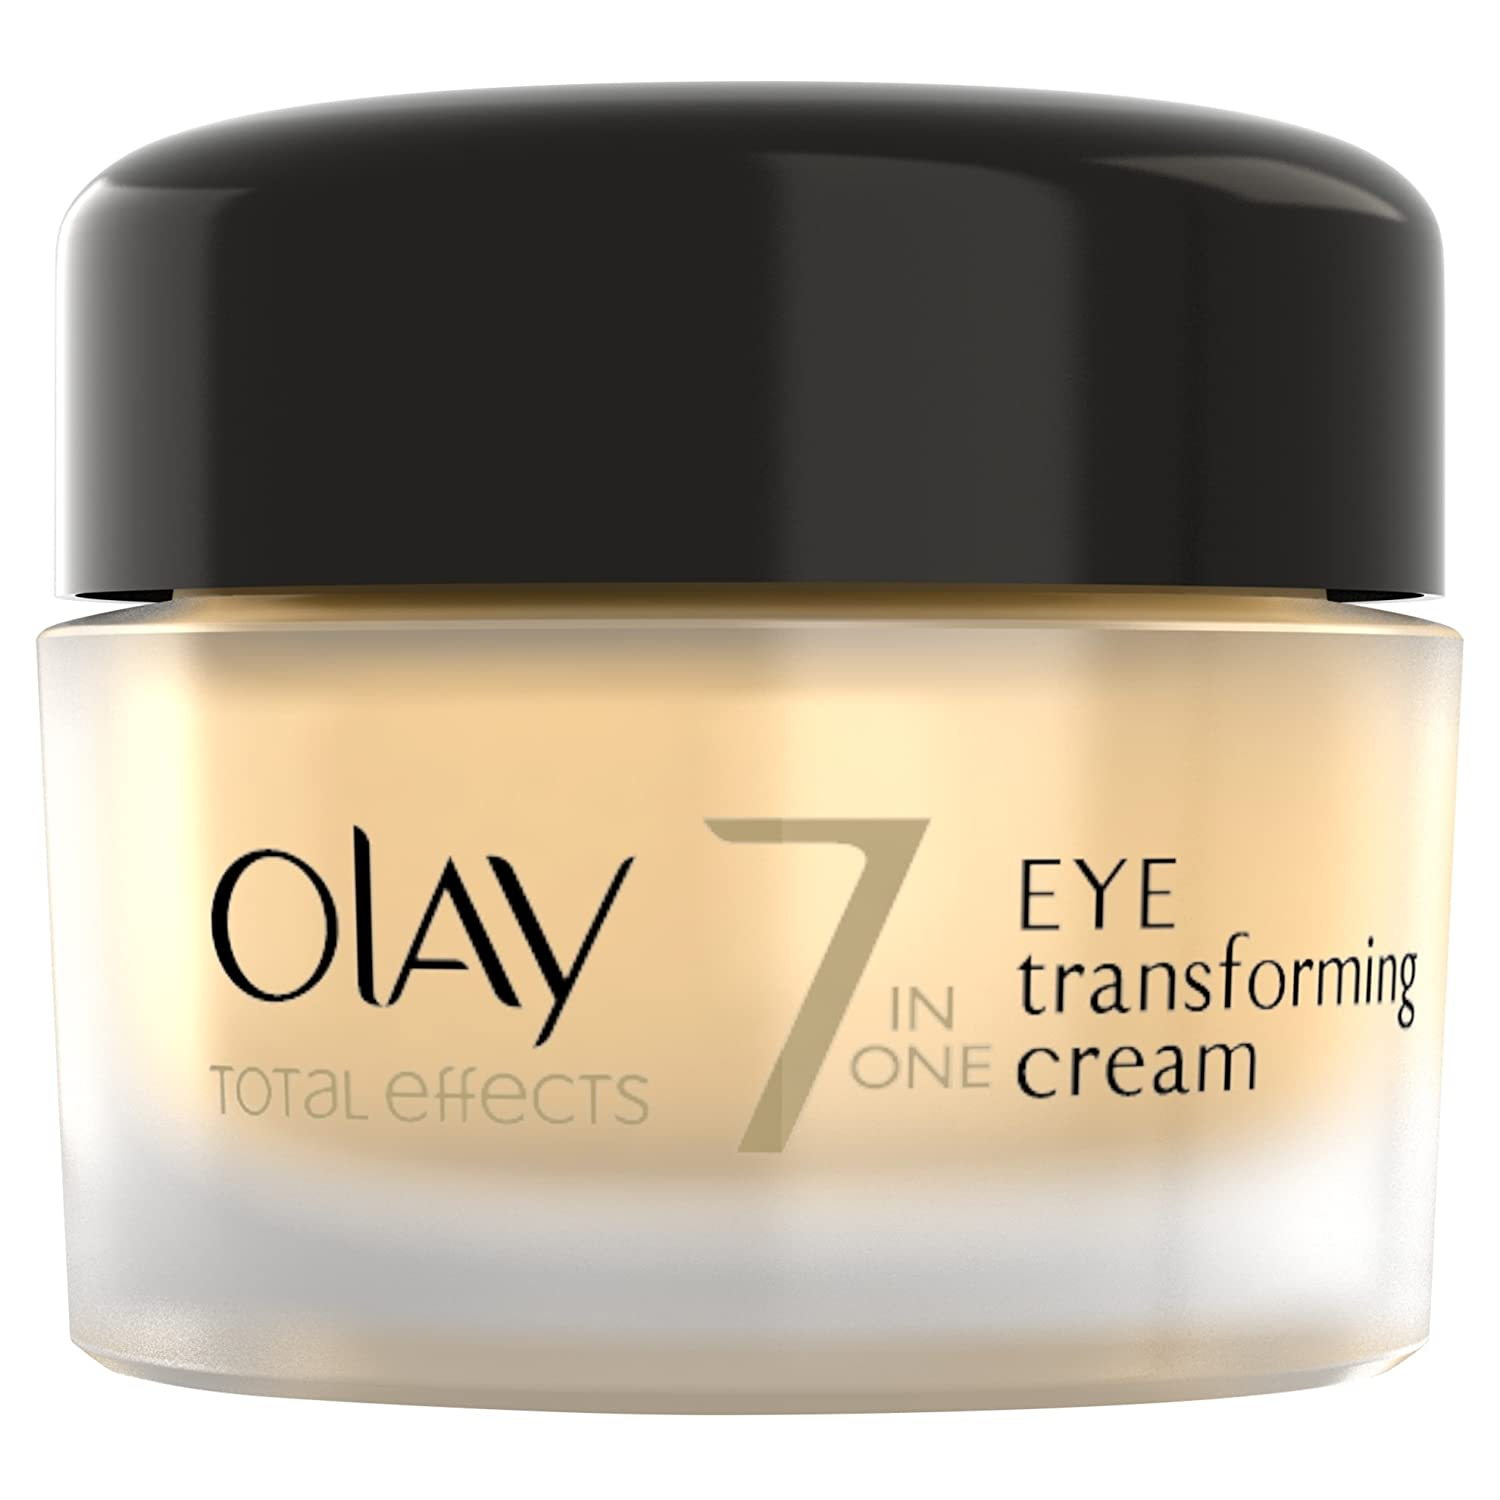 Olay eye transforming cream